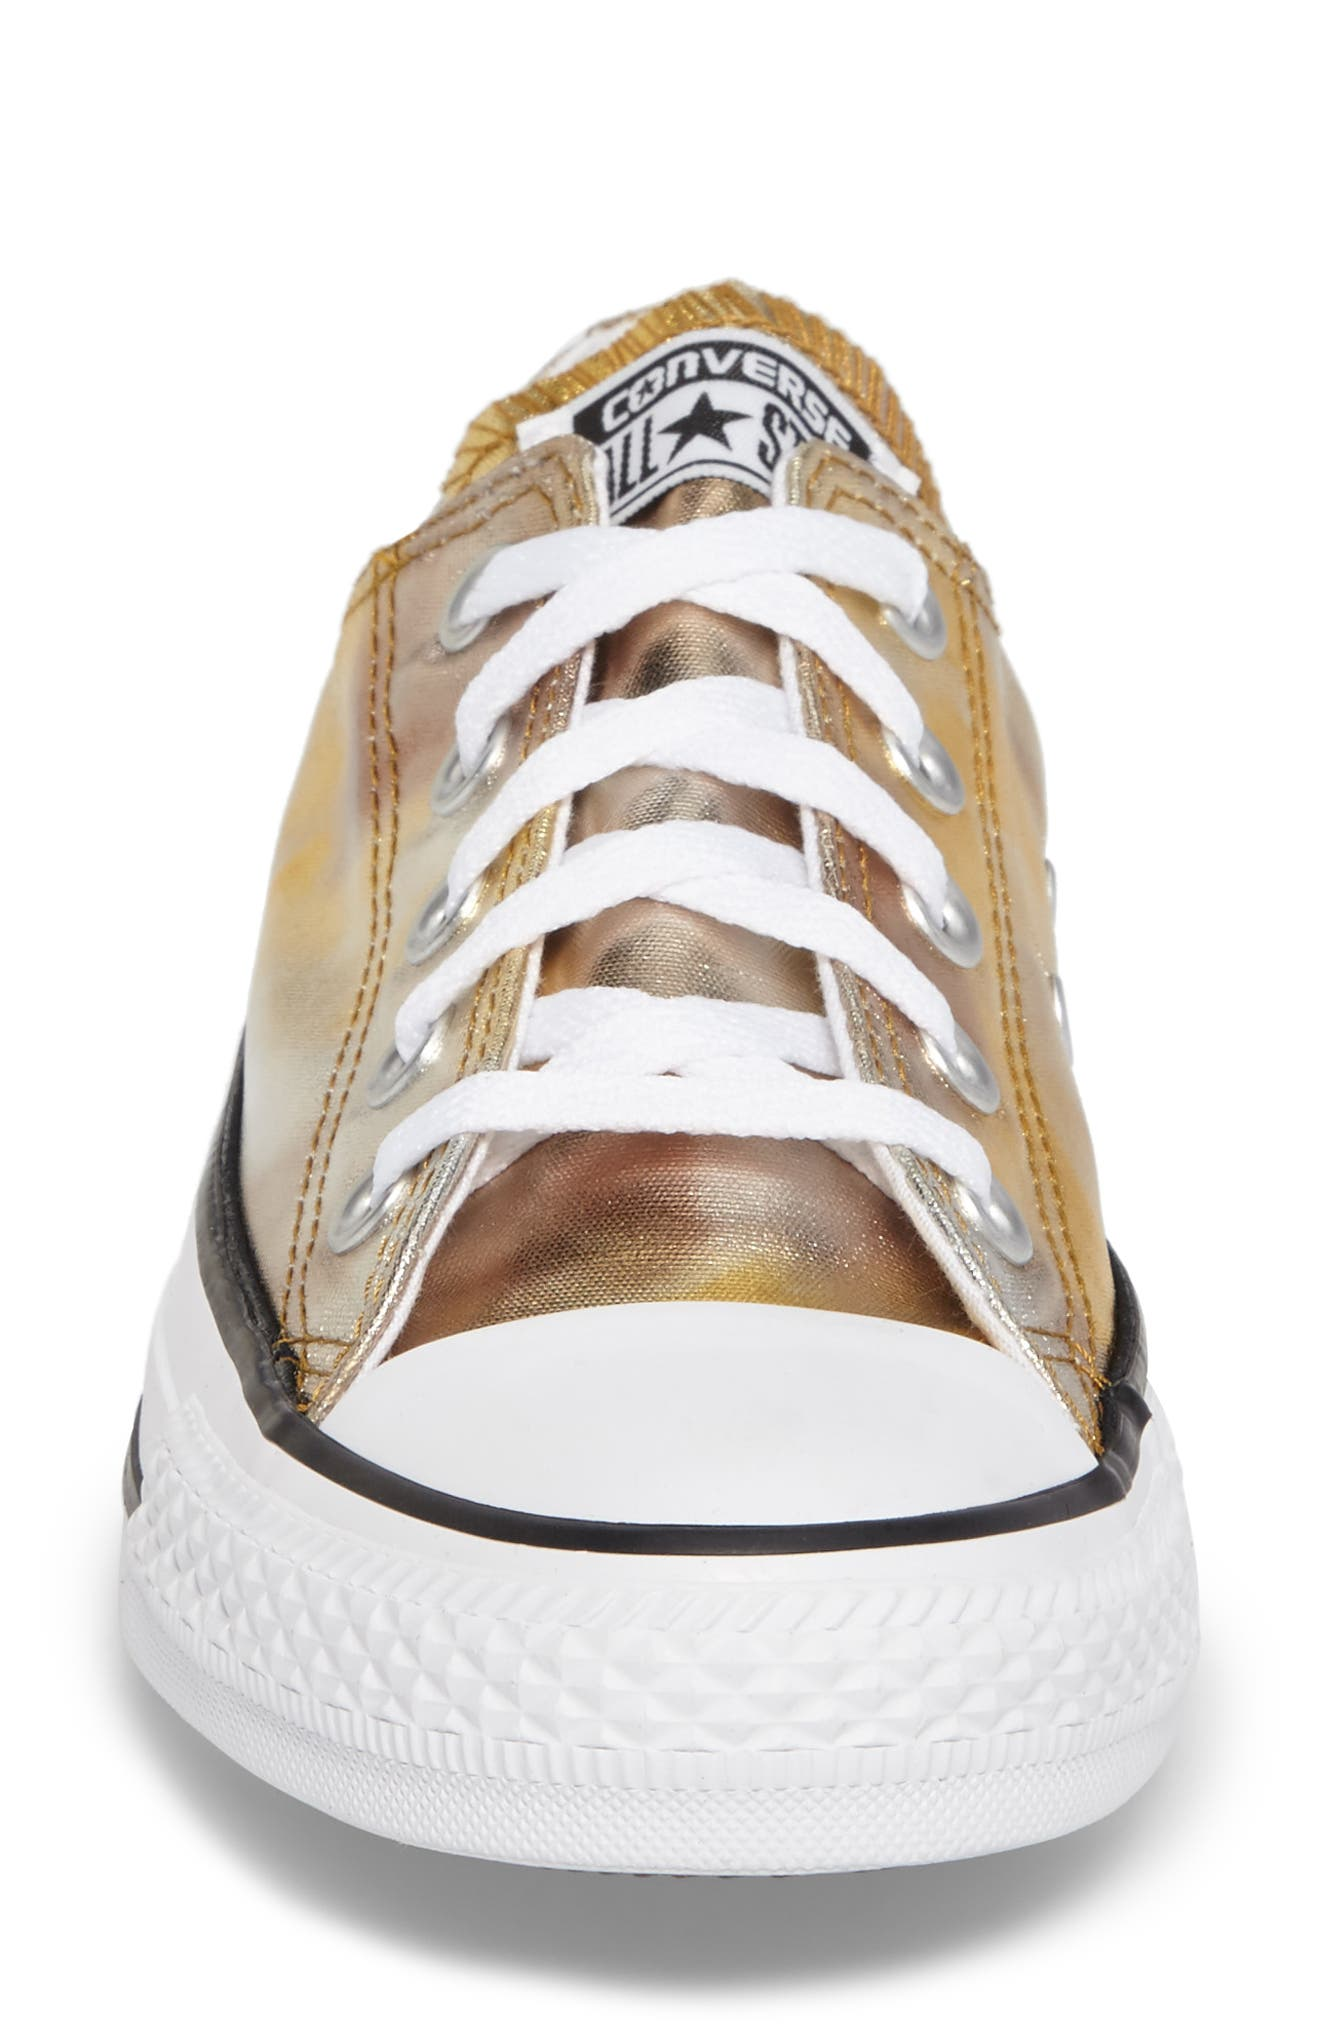 Chuck Taylor<sup>®</sup> All Star<sup>®</sup> Seasonal Metallic Ox Low Top Sneaker,                             Alternate thumbnail 12, color,